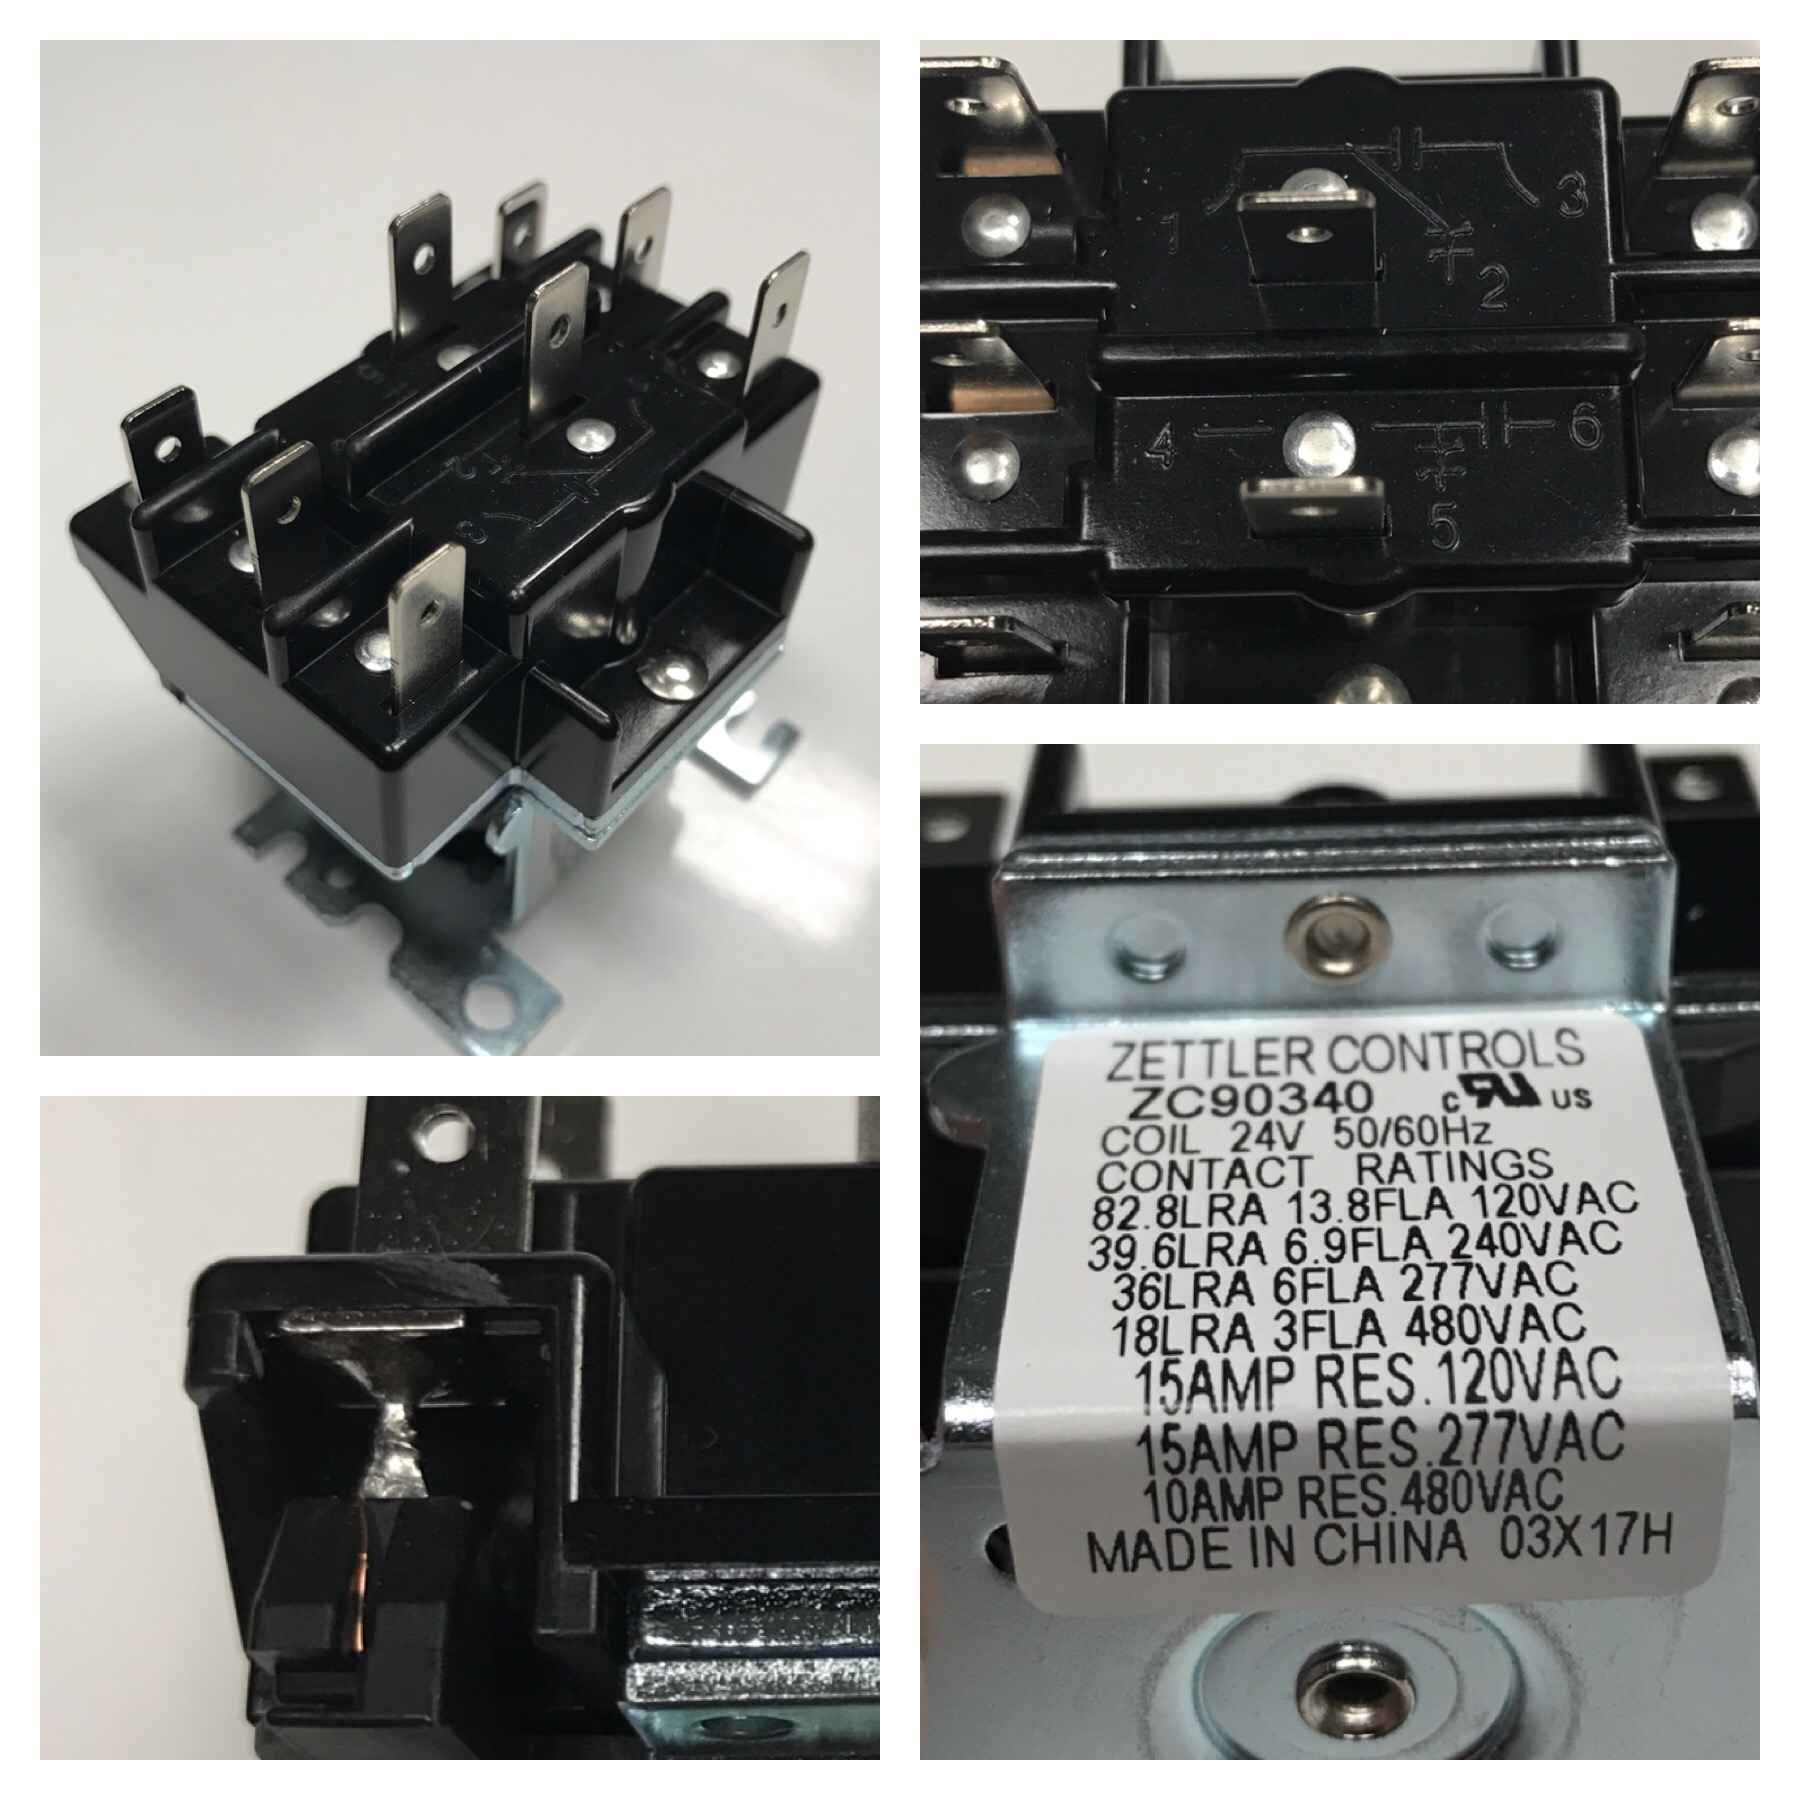 Understanding Relays With the 90-340 - HVAC on